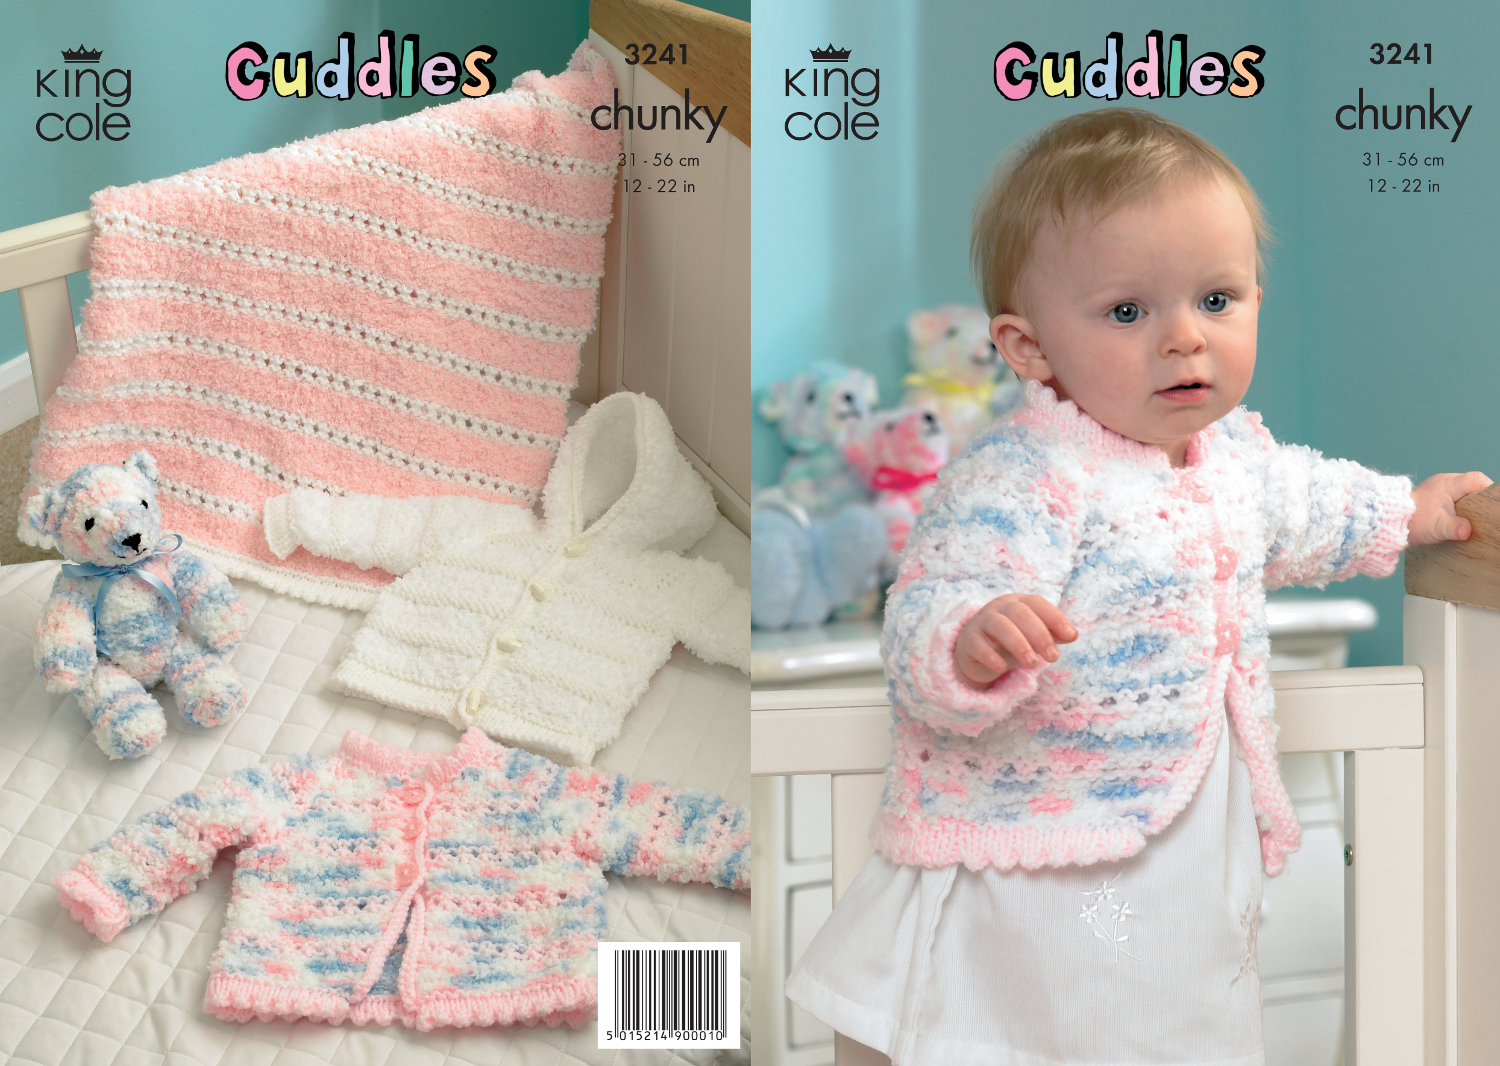 King Cole Cuddles Chunky Knitting Pattern Kids Knitted Pram Cover & Jacke...